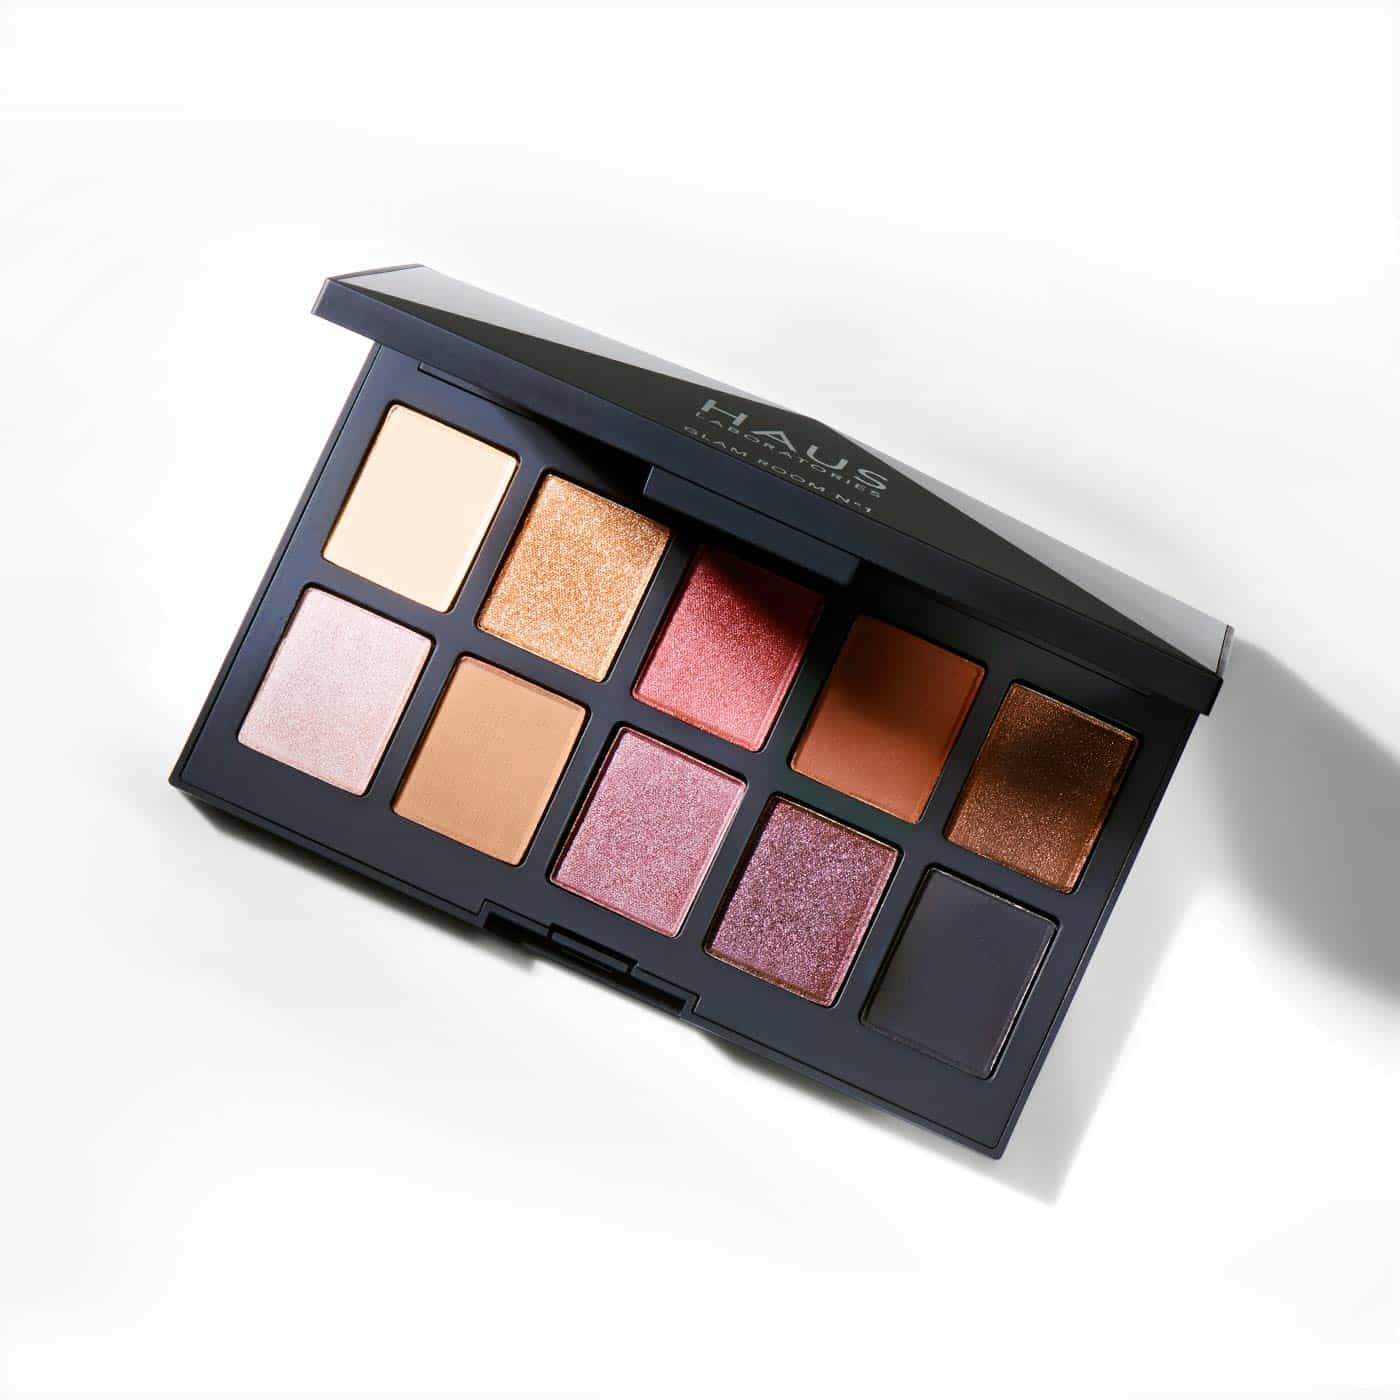 HAUS LABORATORIES By Lady Gaga: Glam Room Palette No.1